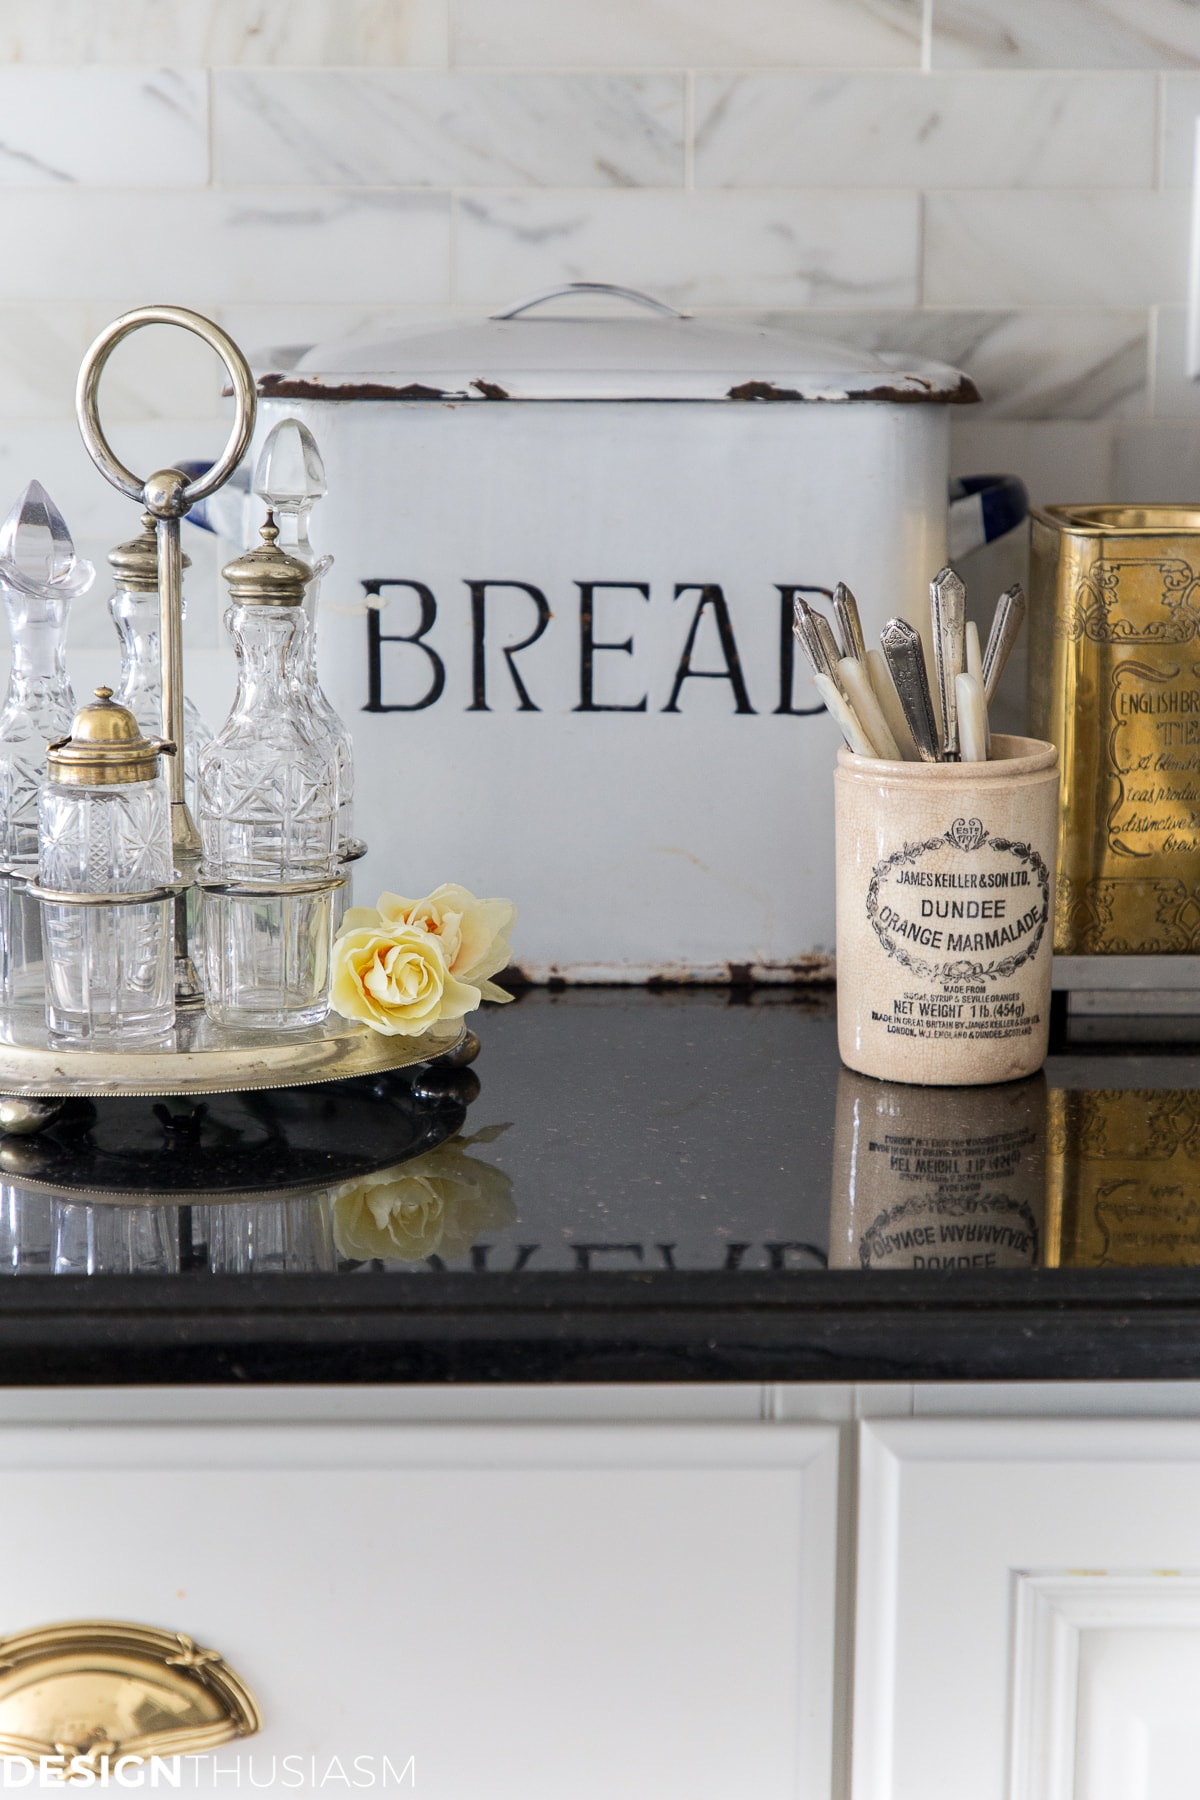 vintage bread box for kitchen counter organization